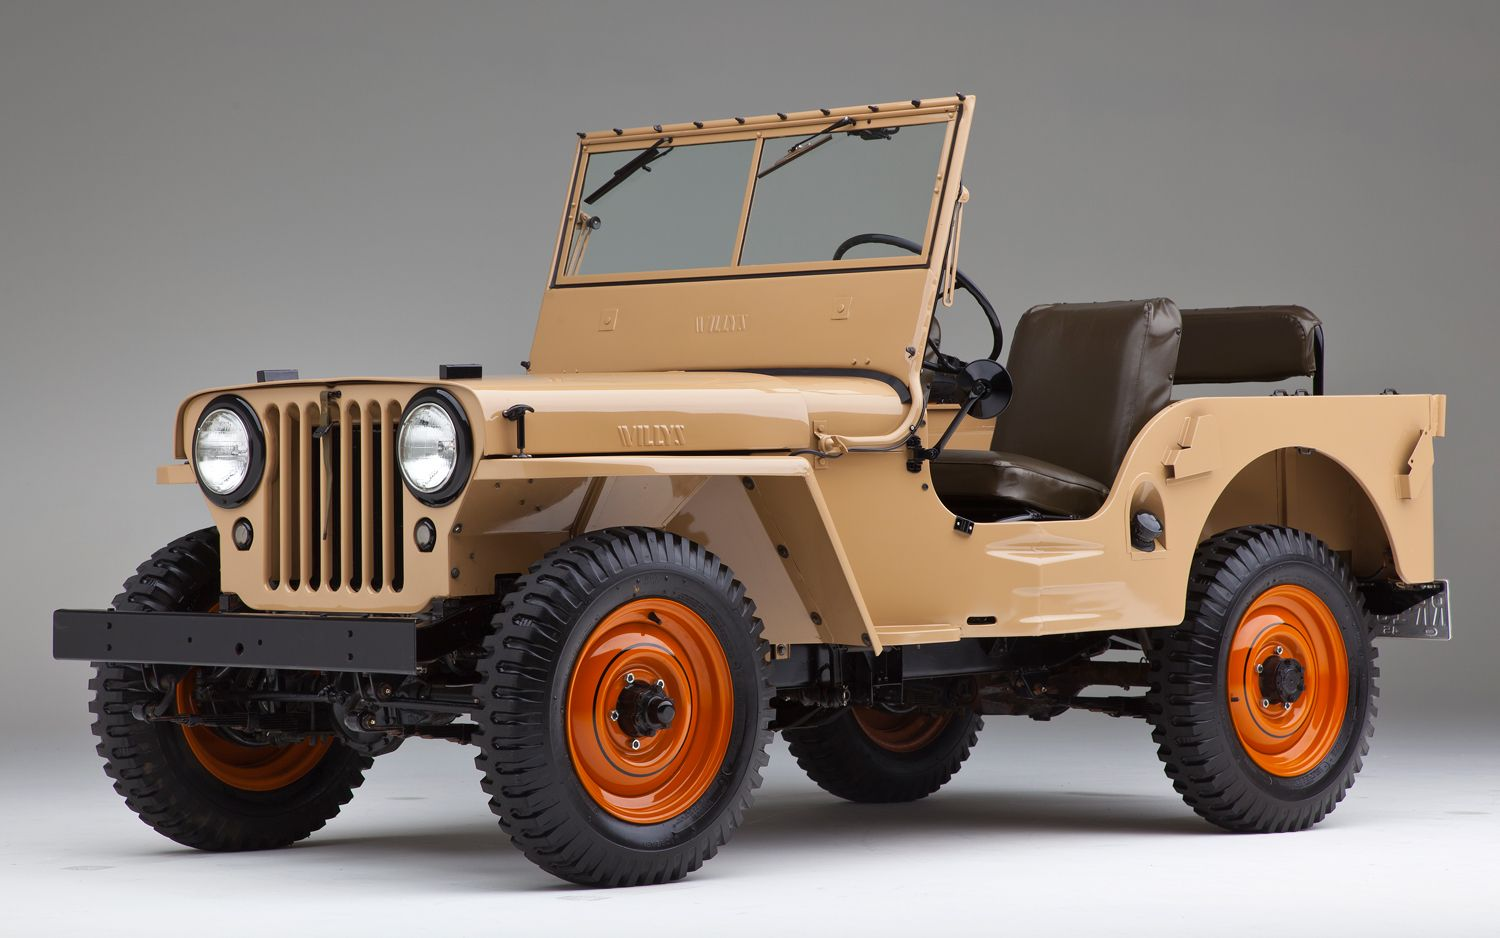 Freedom incarnate driving the jeep that won the war and america heart read more about this 1945 willys overland model from the truck and suv experts at